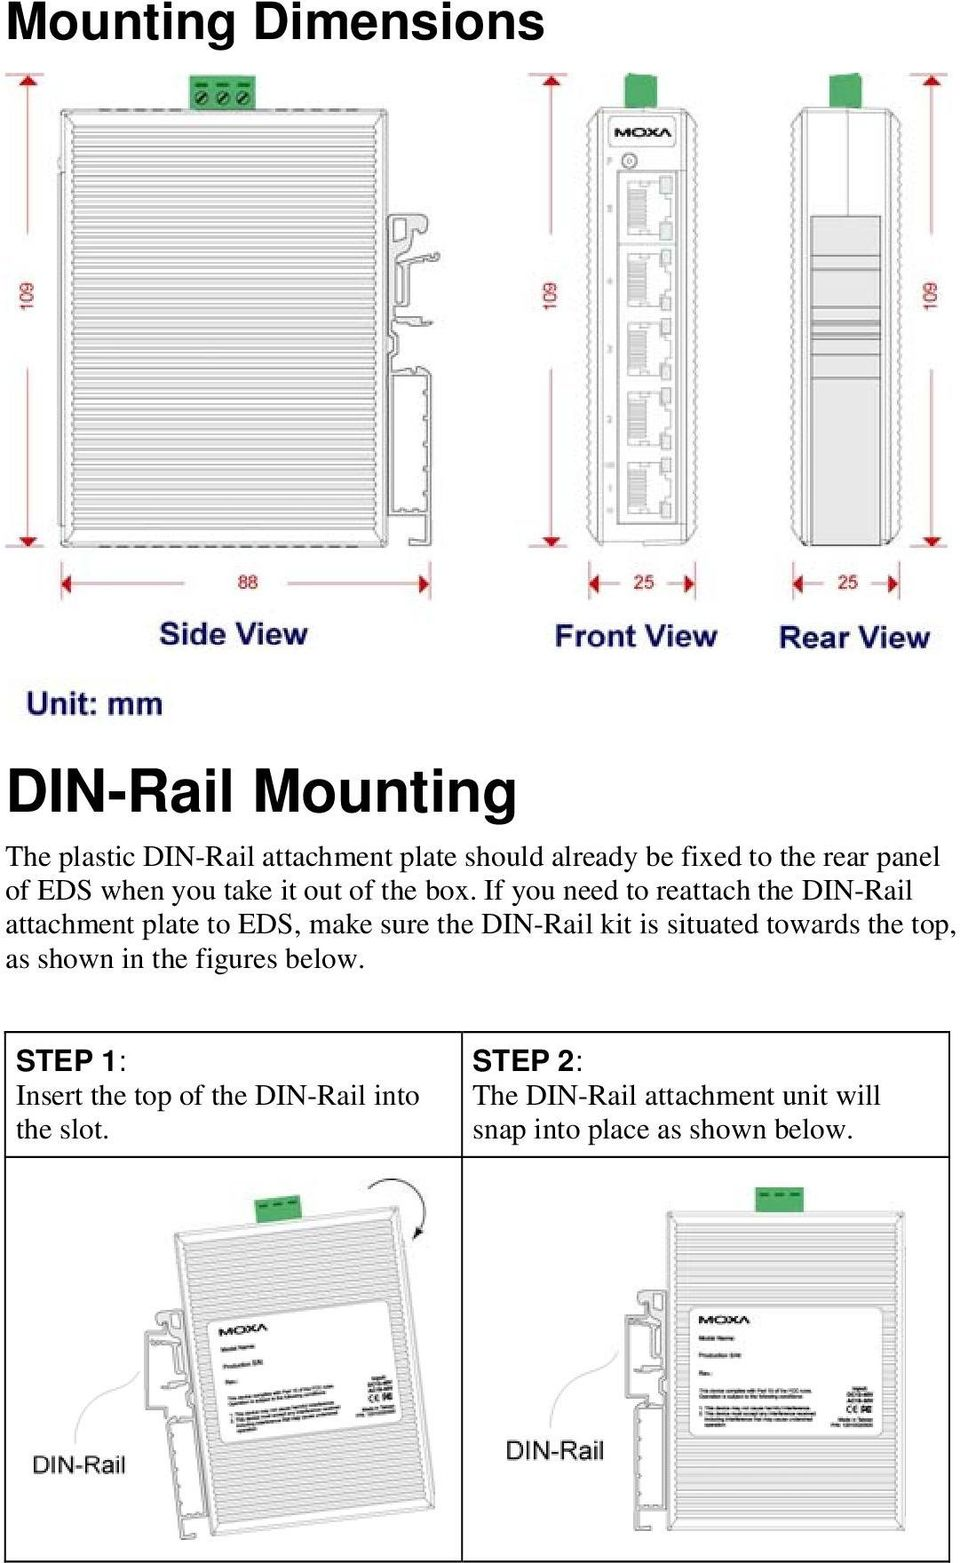 If you need to reattach the DIN-Rail attachment plate to EDS, make sure the DIN-Rail kit is situated towards